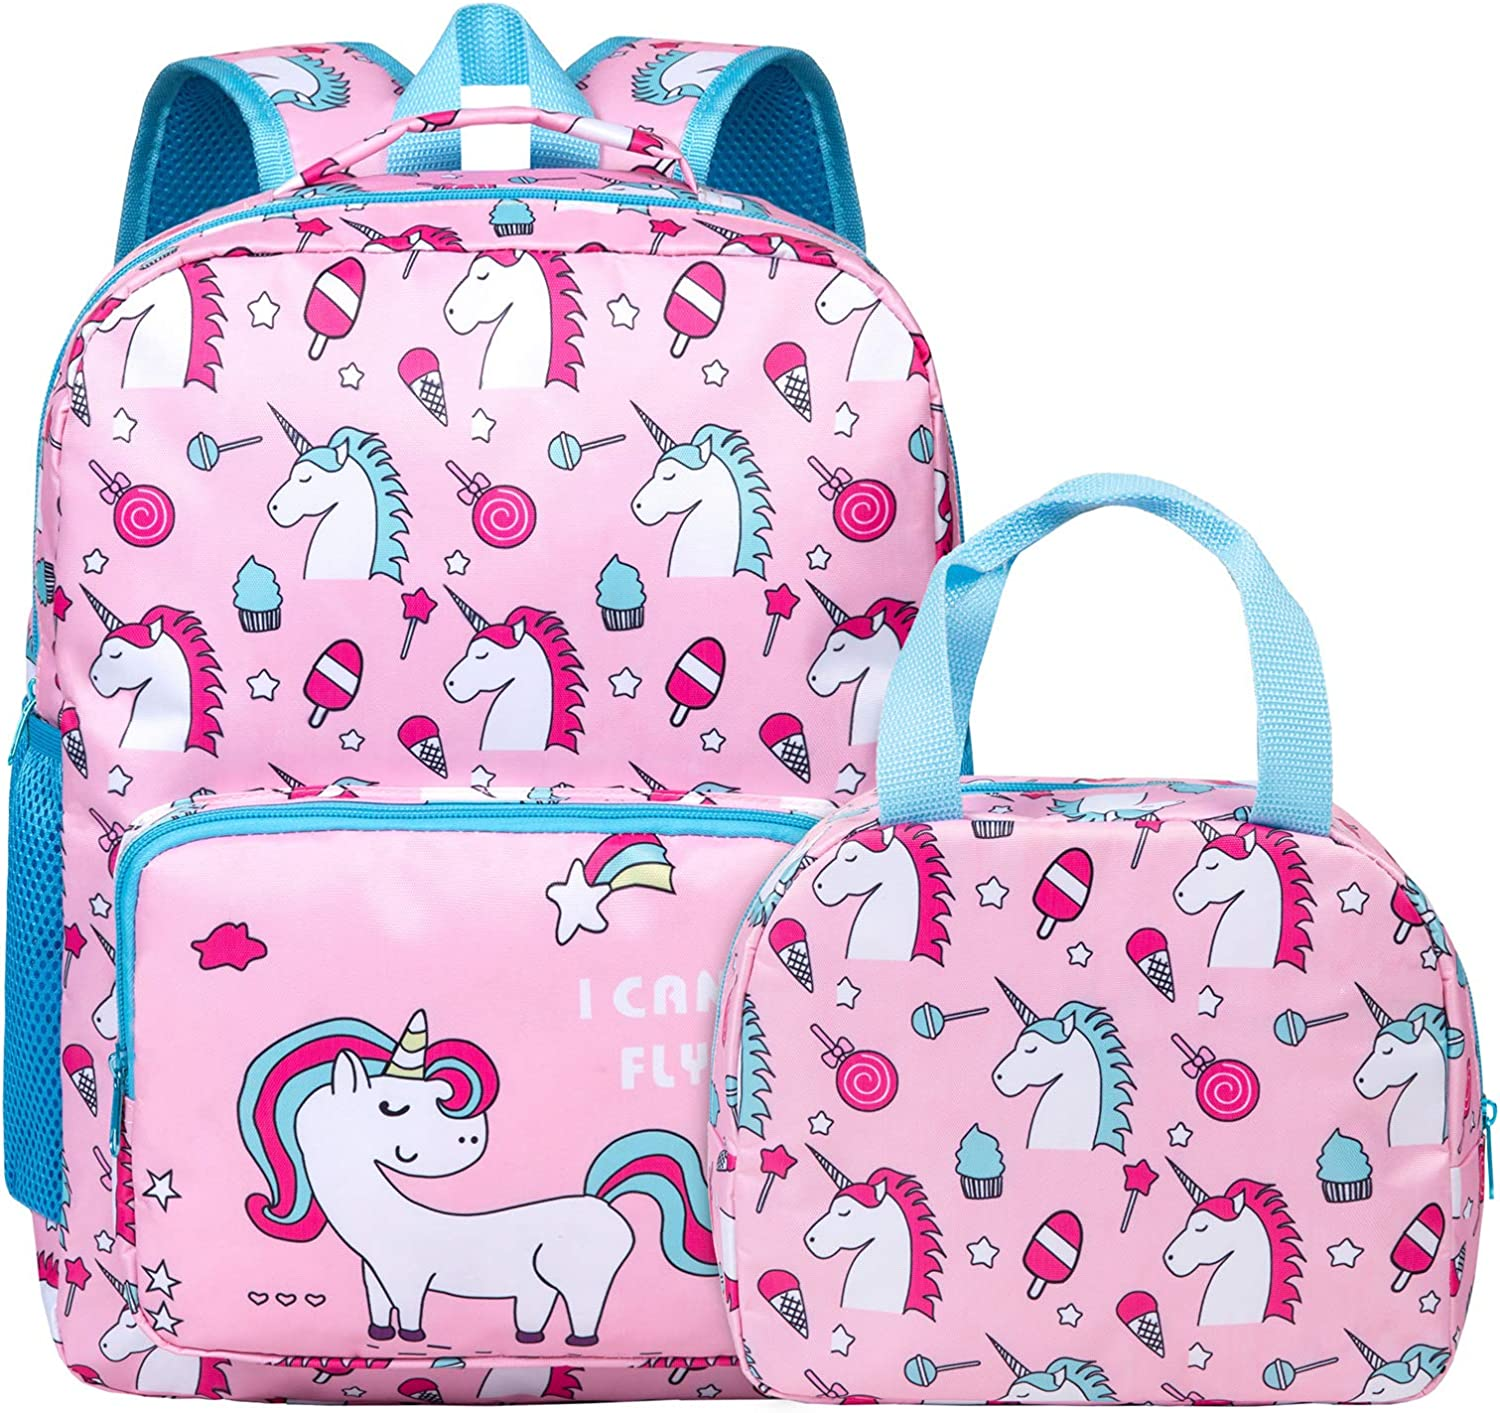 Unicorn Backpack for Girls Toddler free shipping Kids Easy-to-use Teen School Pink Boo